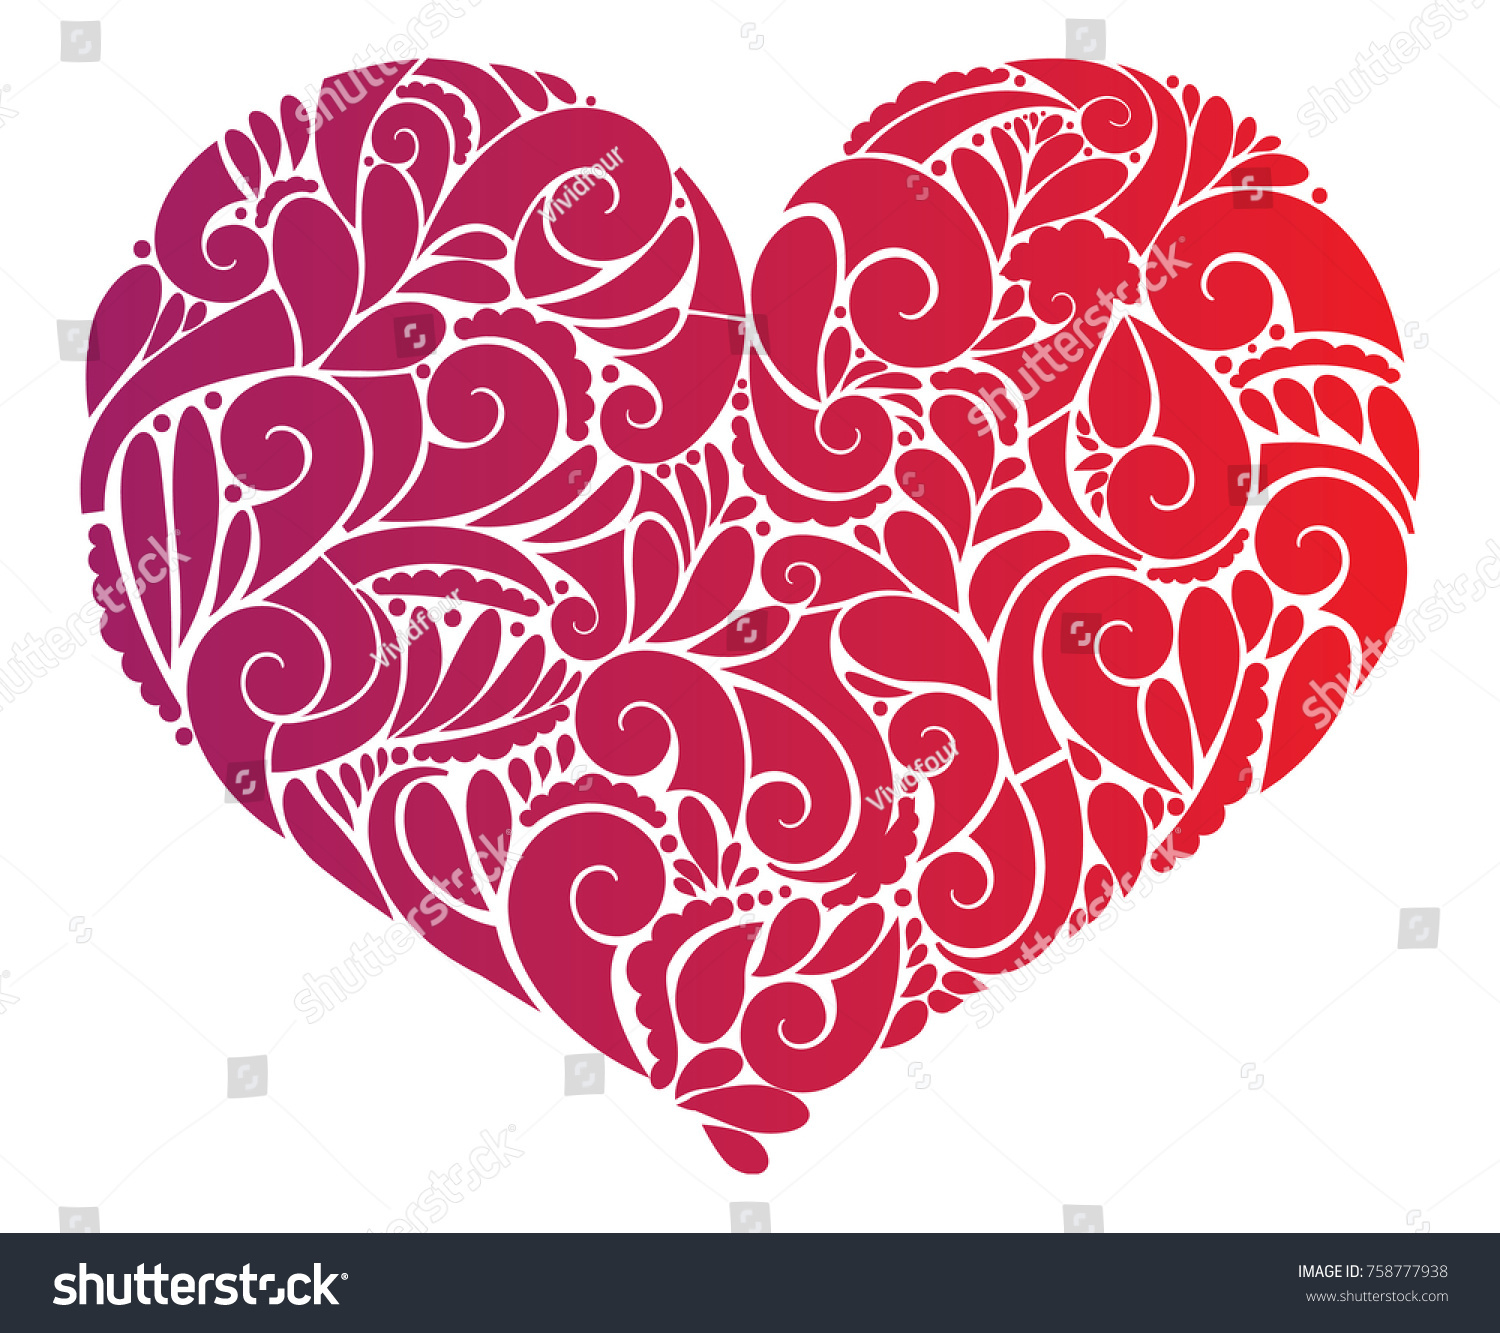 Red Floral Heart Clipart Motif Vector Stock Vector (Royalty Free.